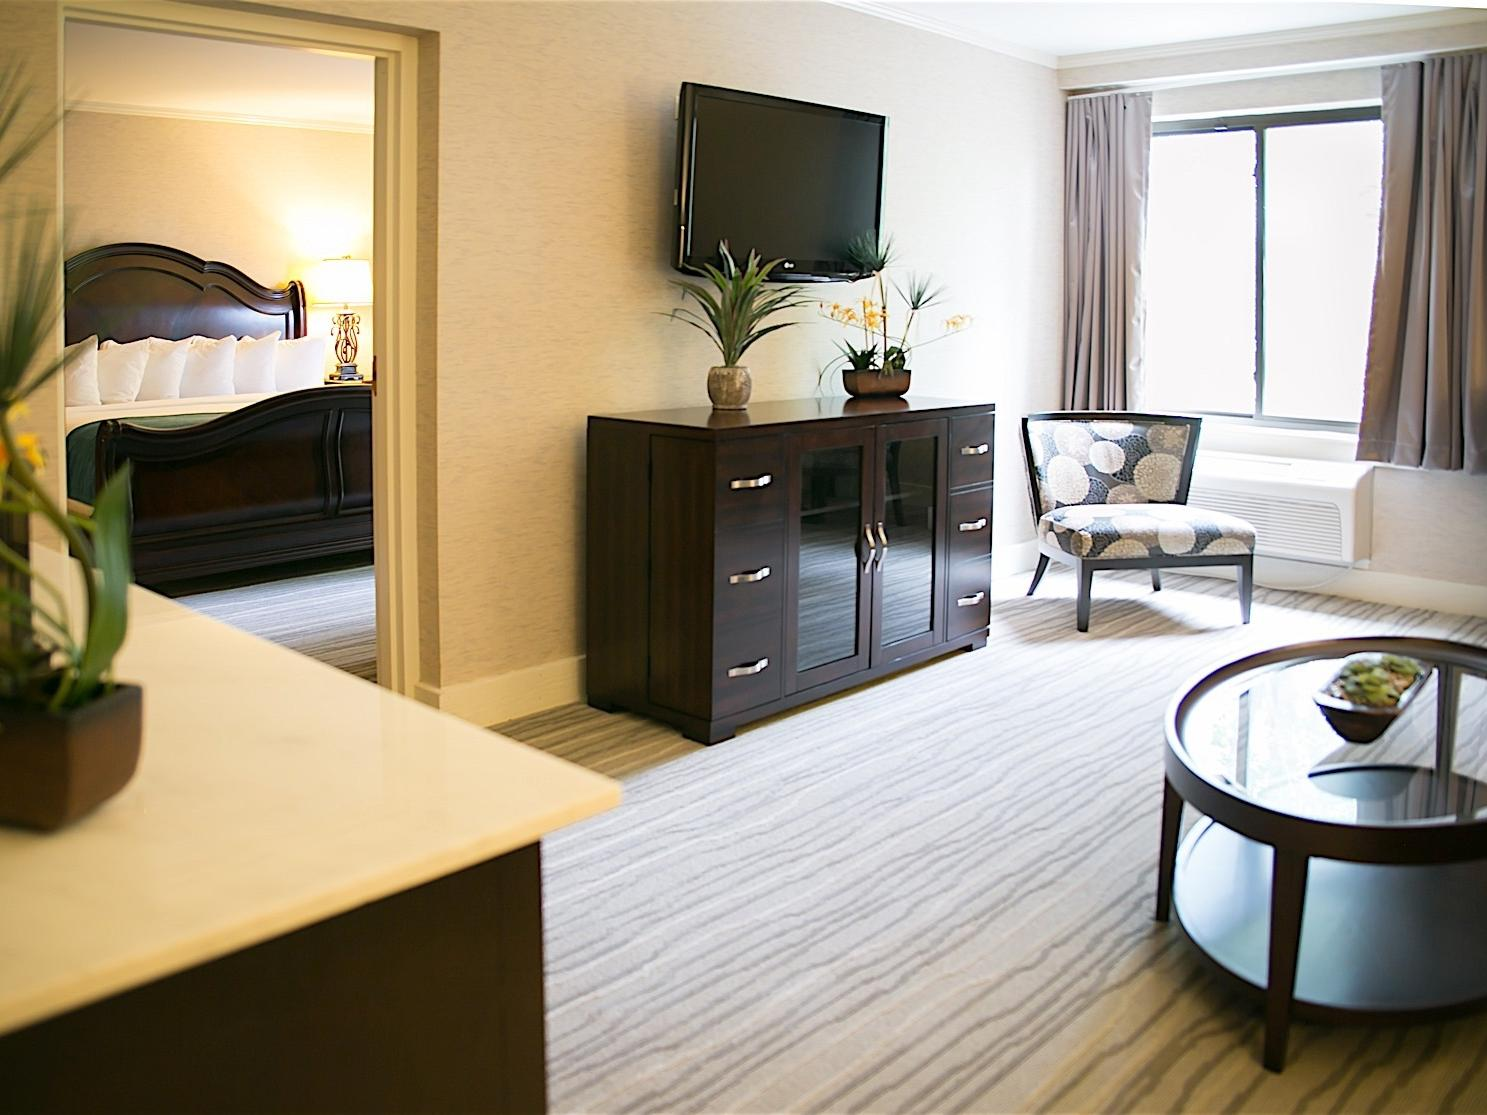 Hotel suite with television